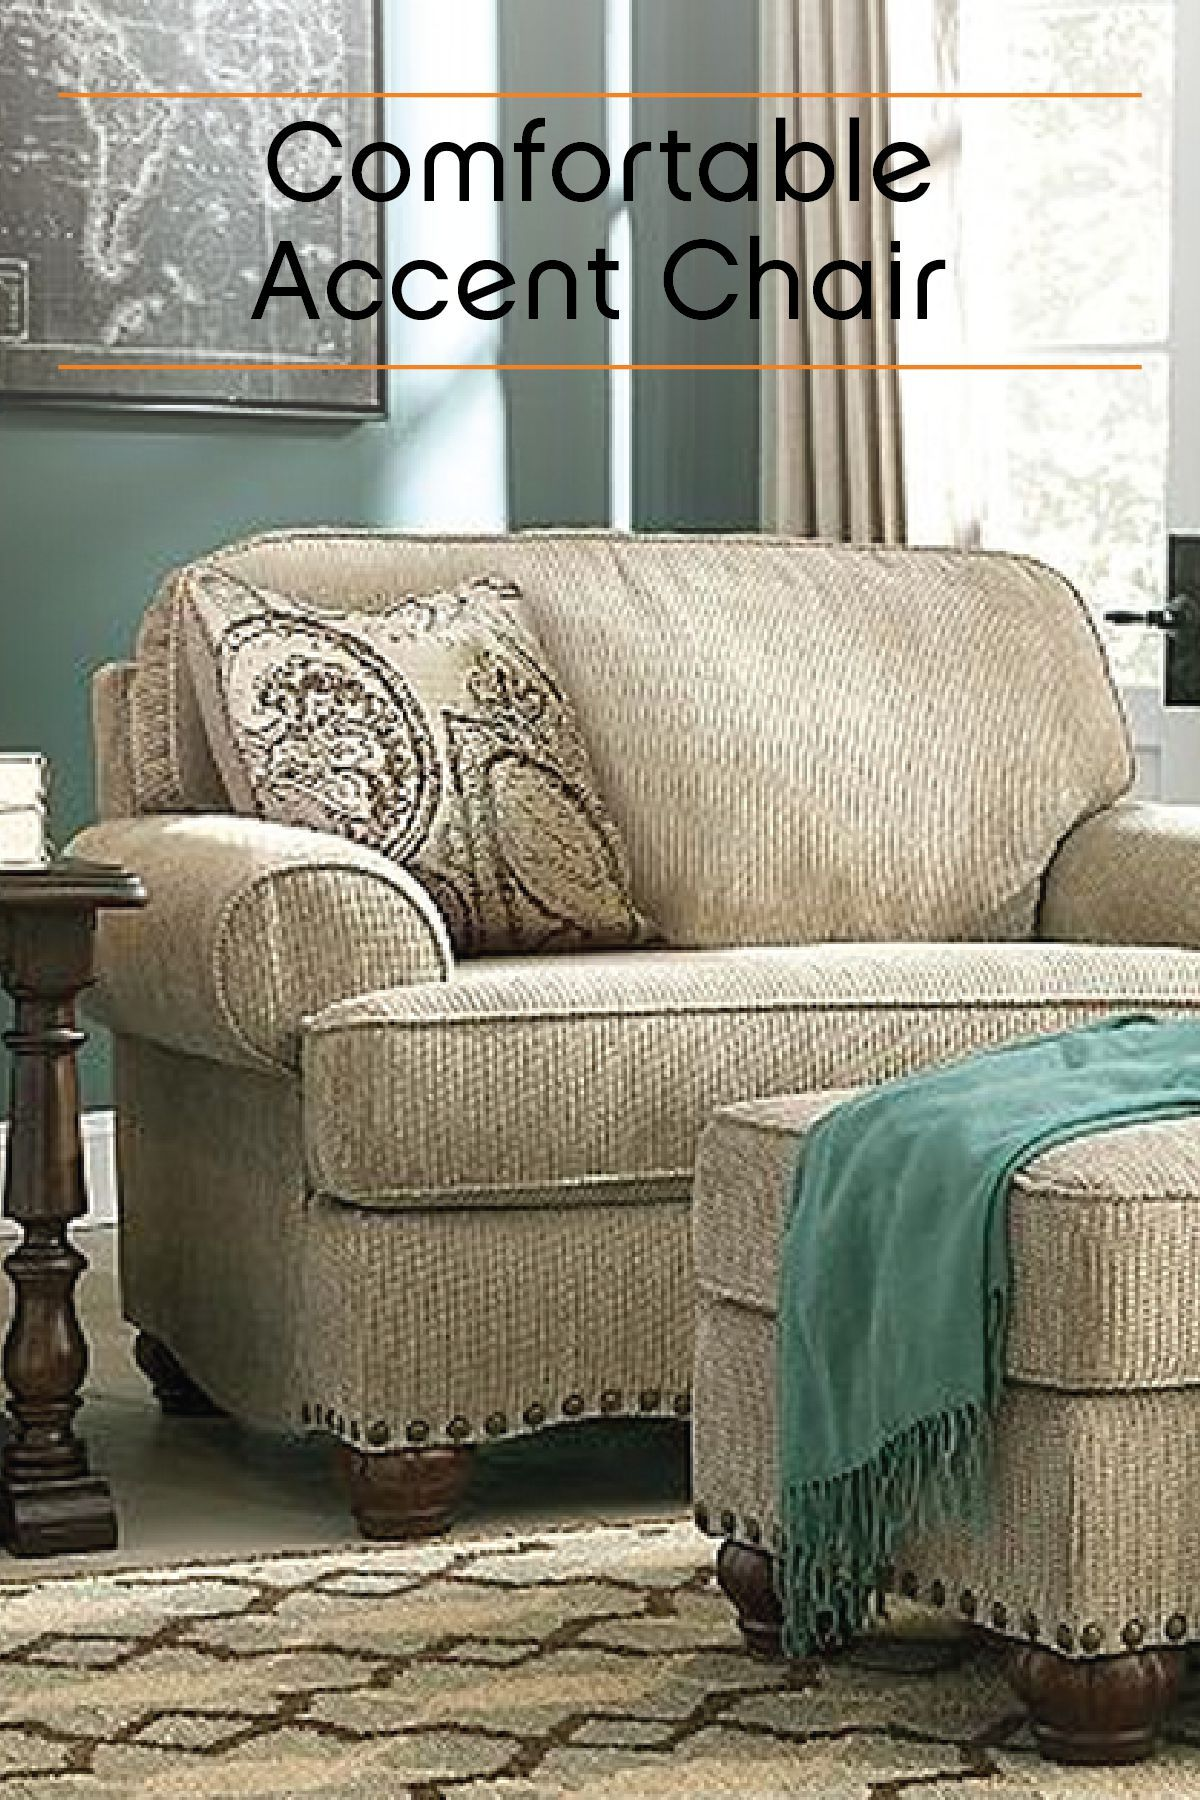 This Oversized Accent Chair Is A Roomy And Stylish Way To